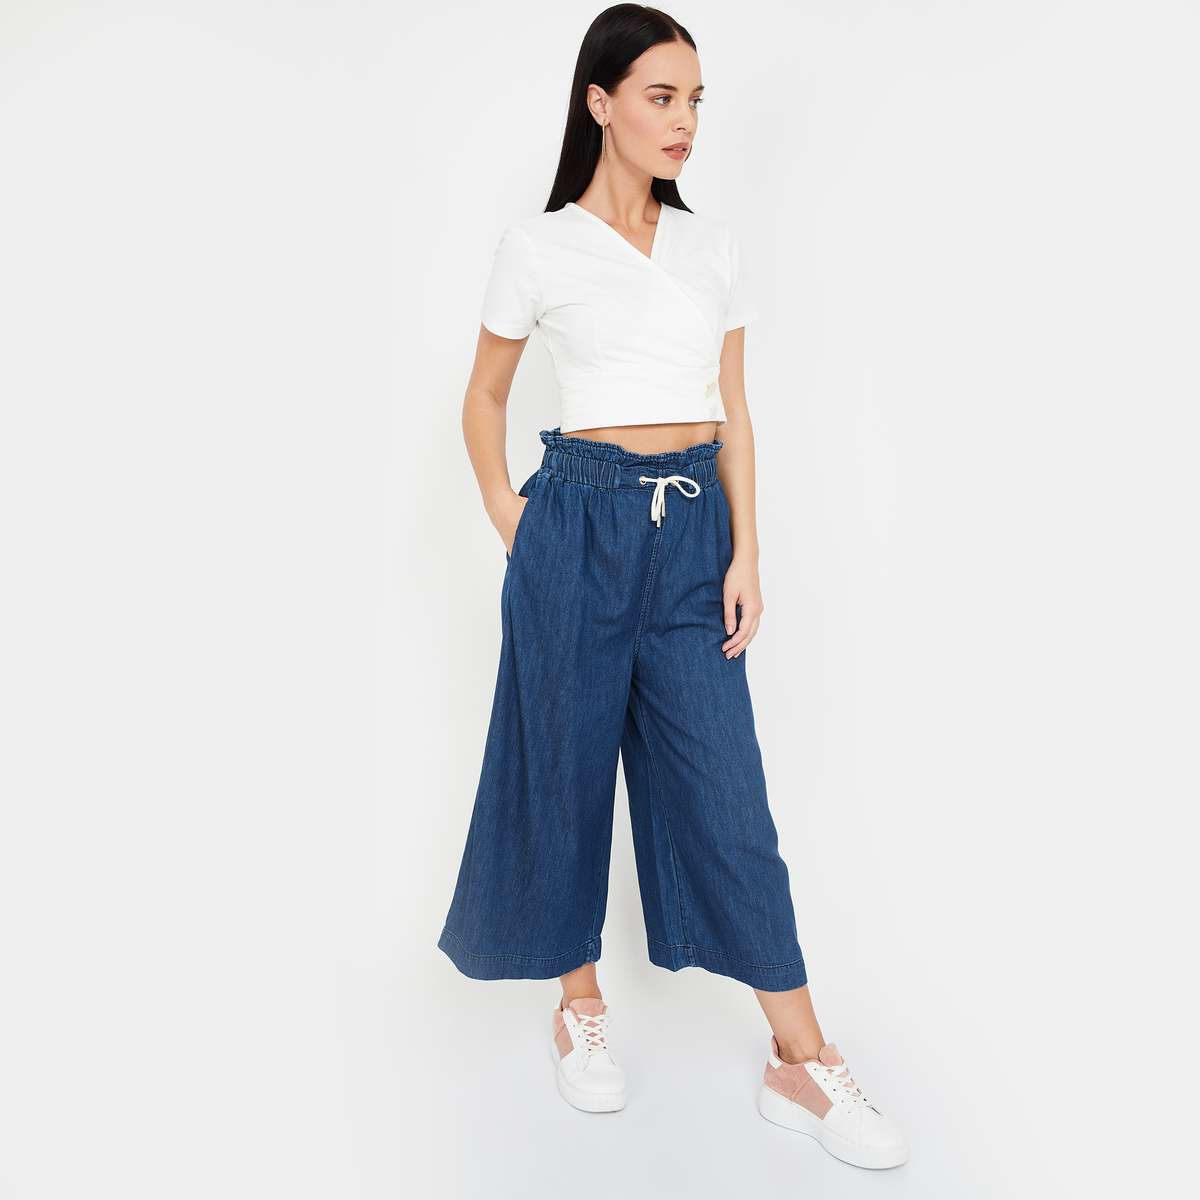 4.GINGER Solid Elasticated Flared Jeans